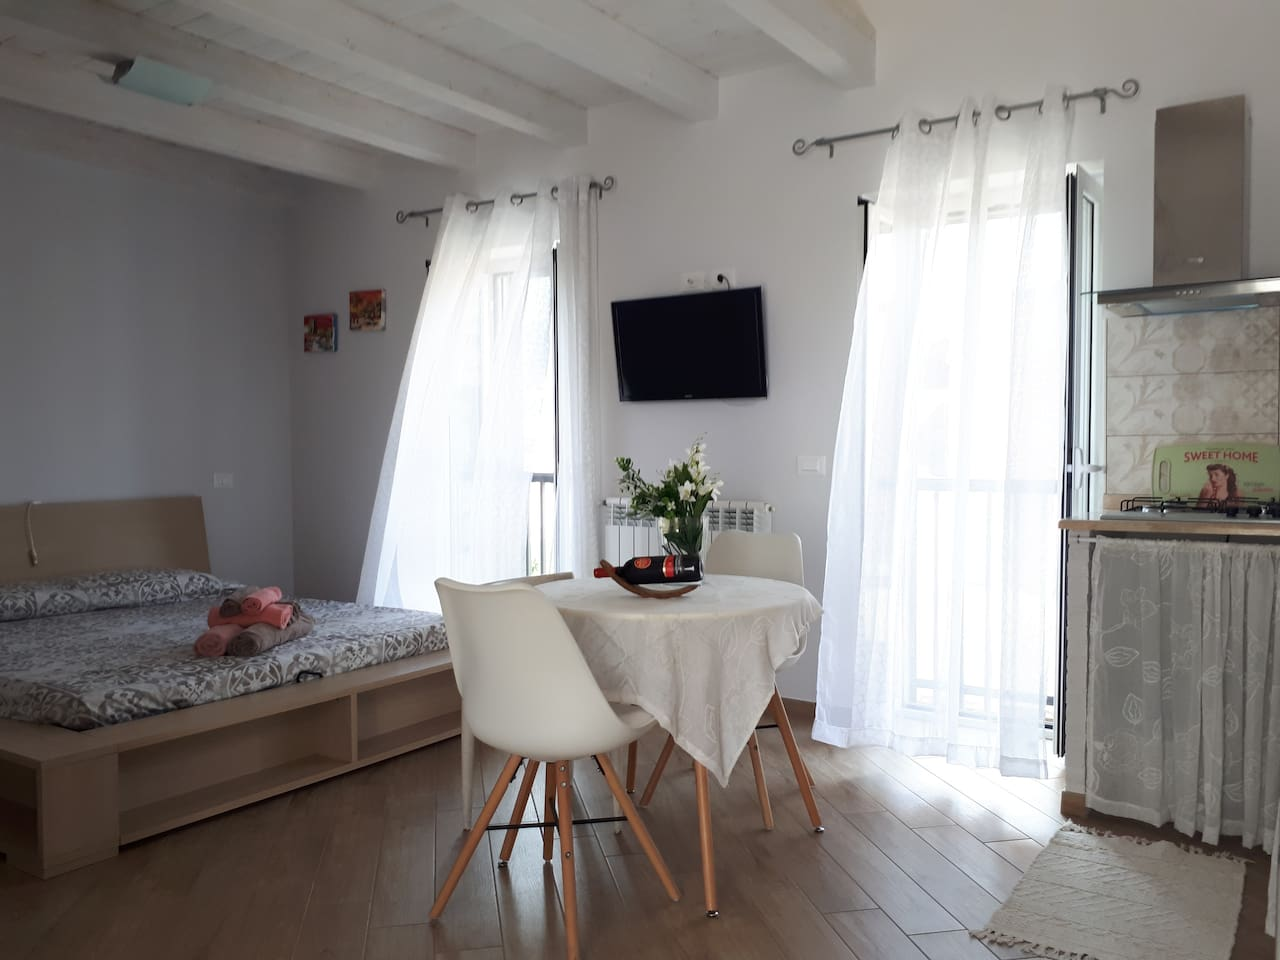 The newly renovated apartment is designed to provide you an enjoyable beach holiday.